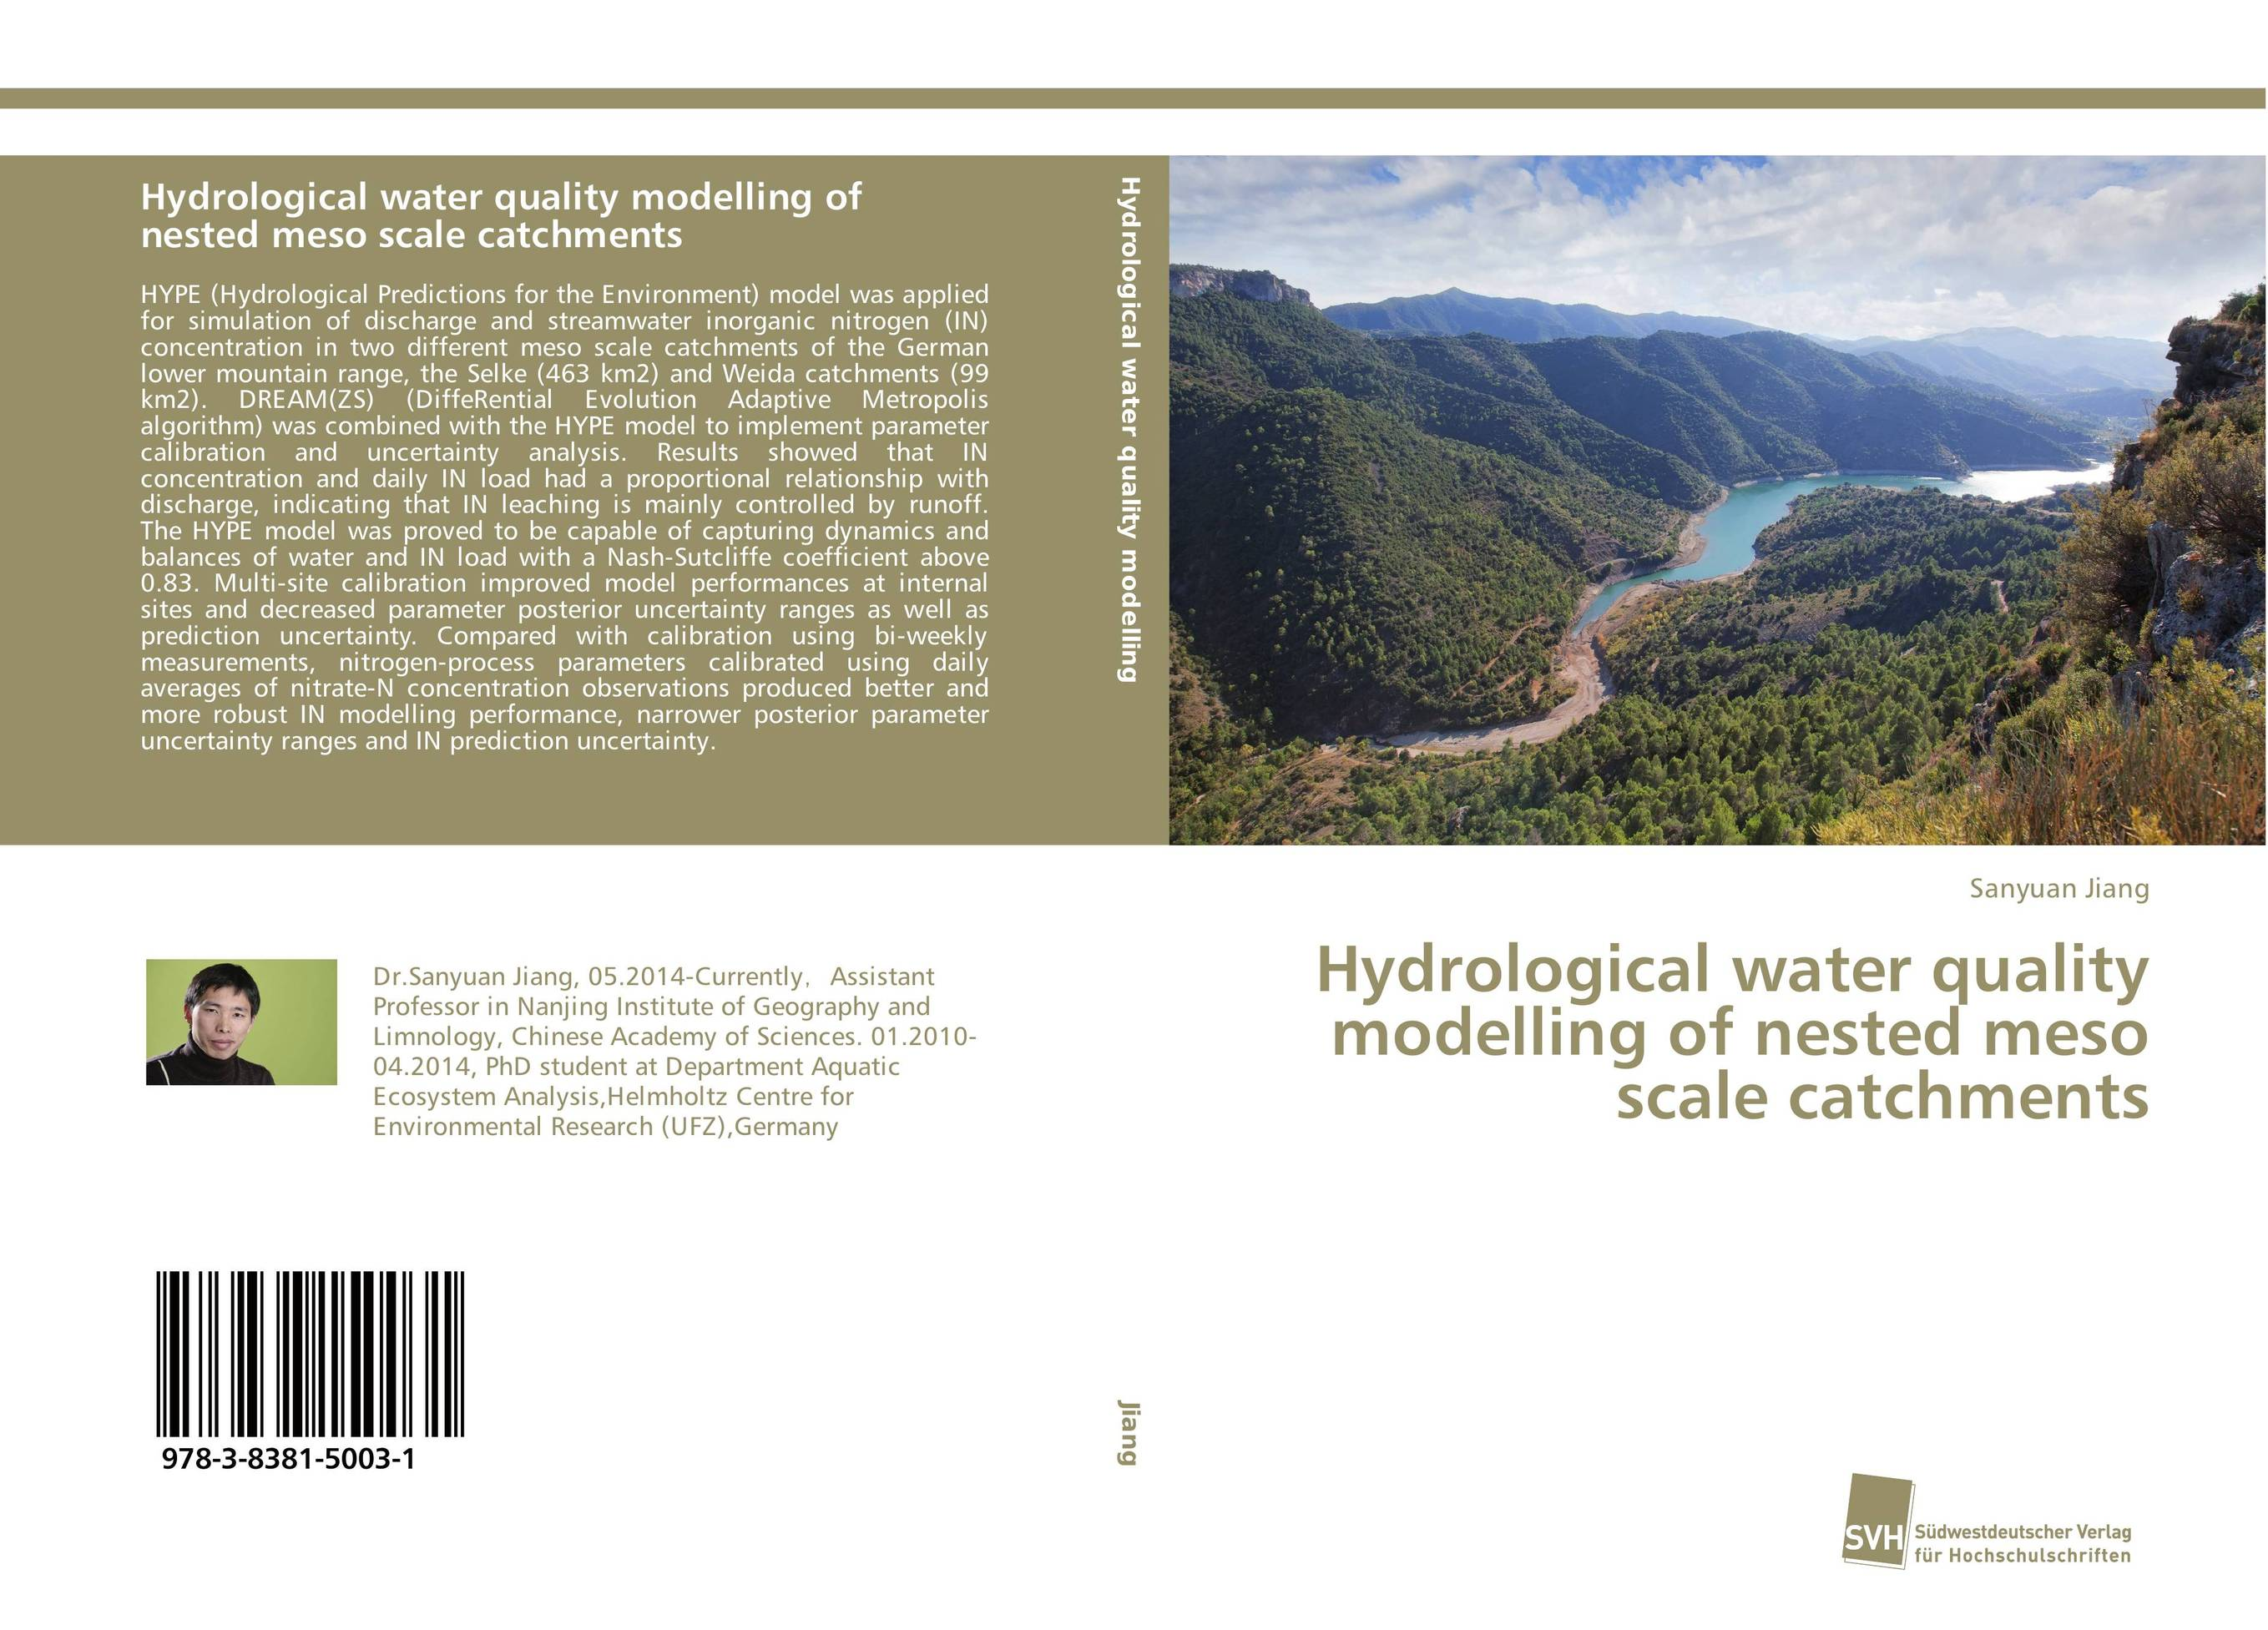 Hydrological water quality modelling of nested meso scale catchments hype hy004burye53